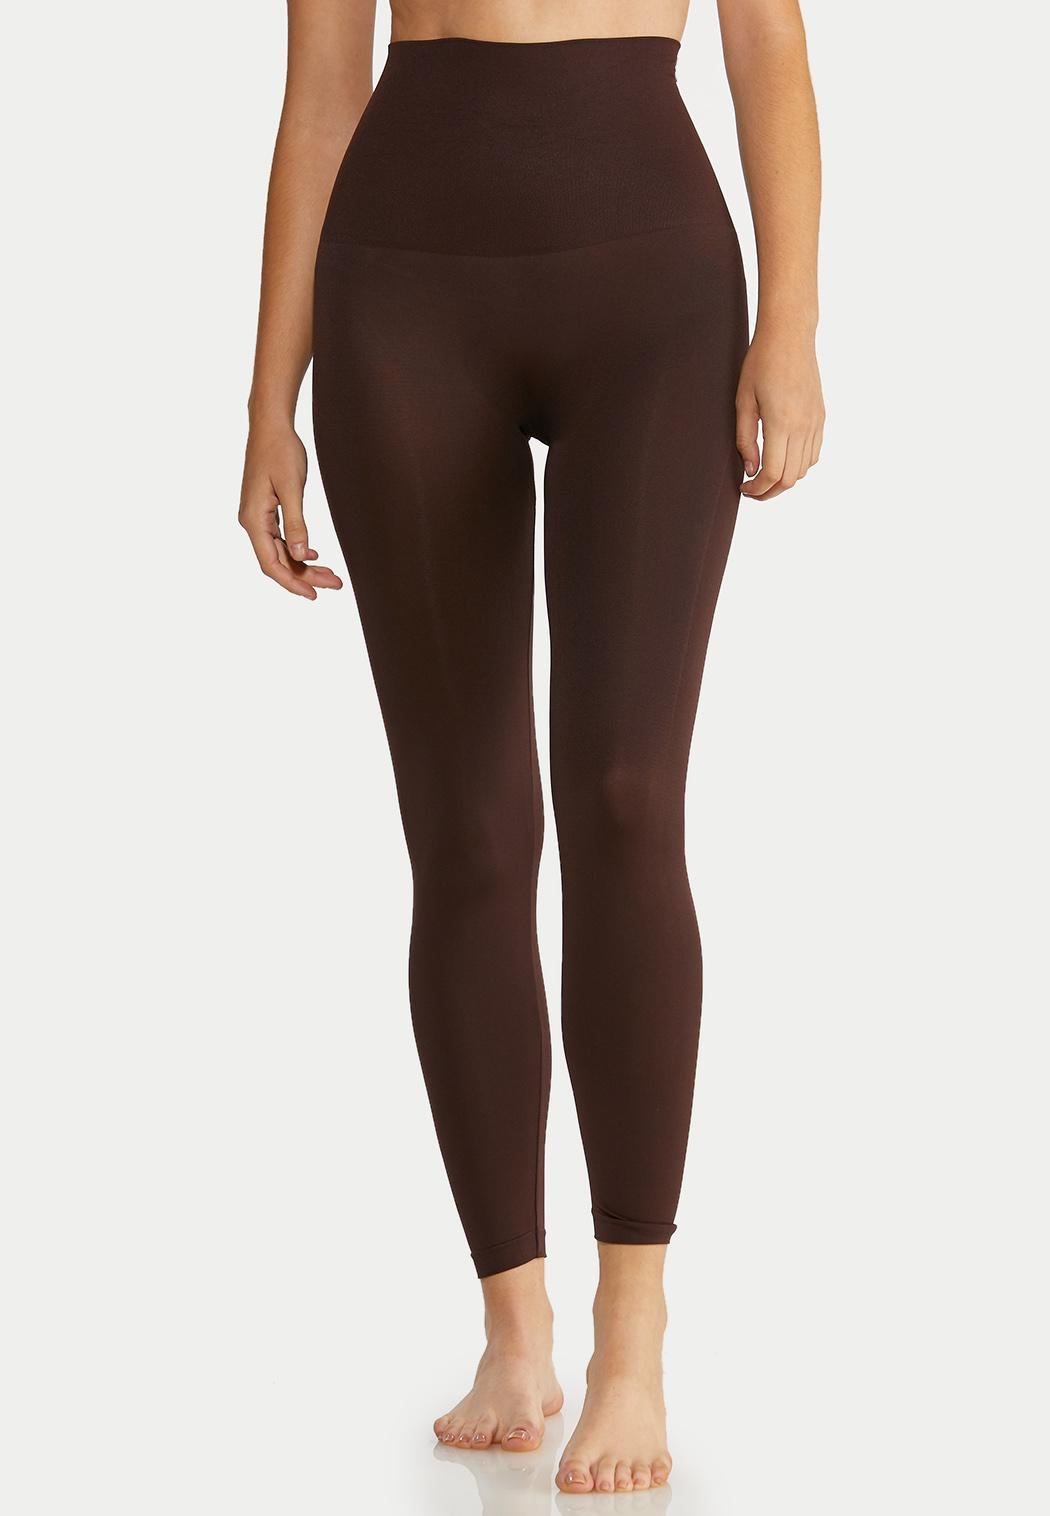 The Perfect Brown Shaping Leggings